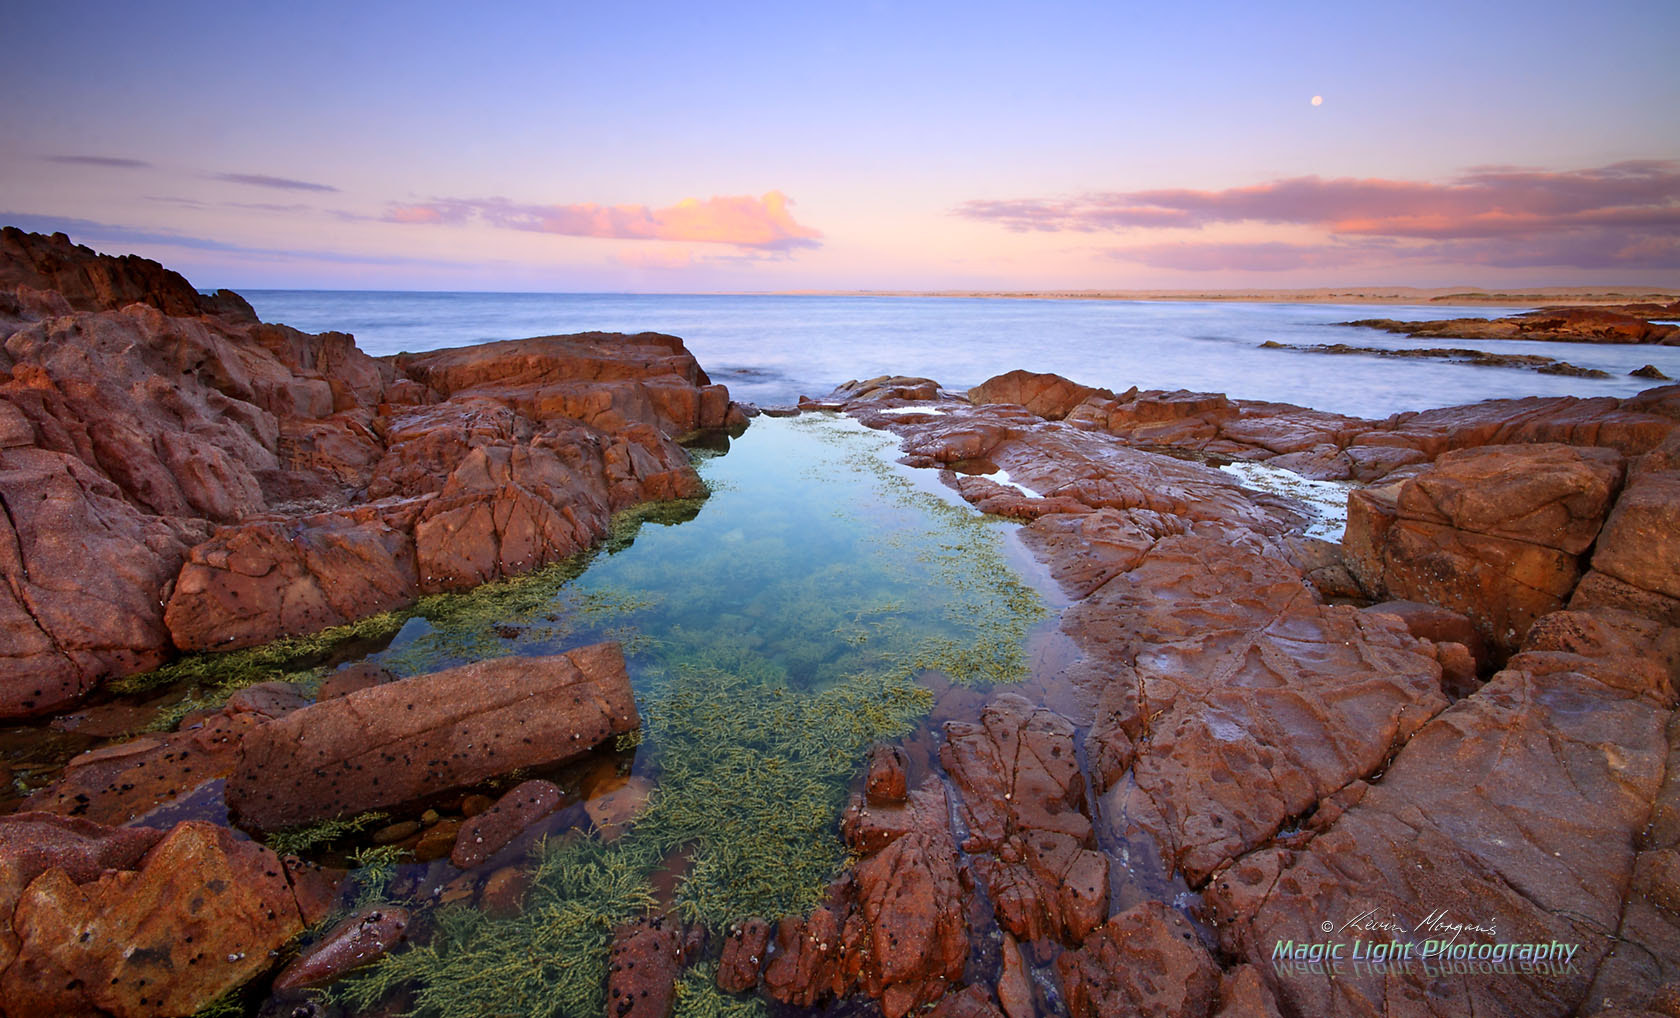 Photograph Moonset at Birubi Point by Kevin Morgan on 500px